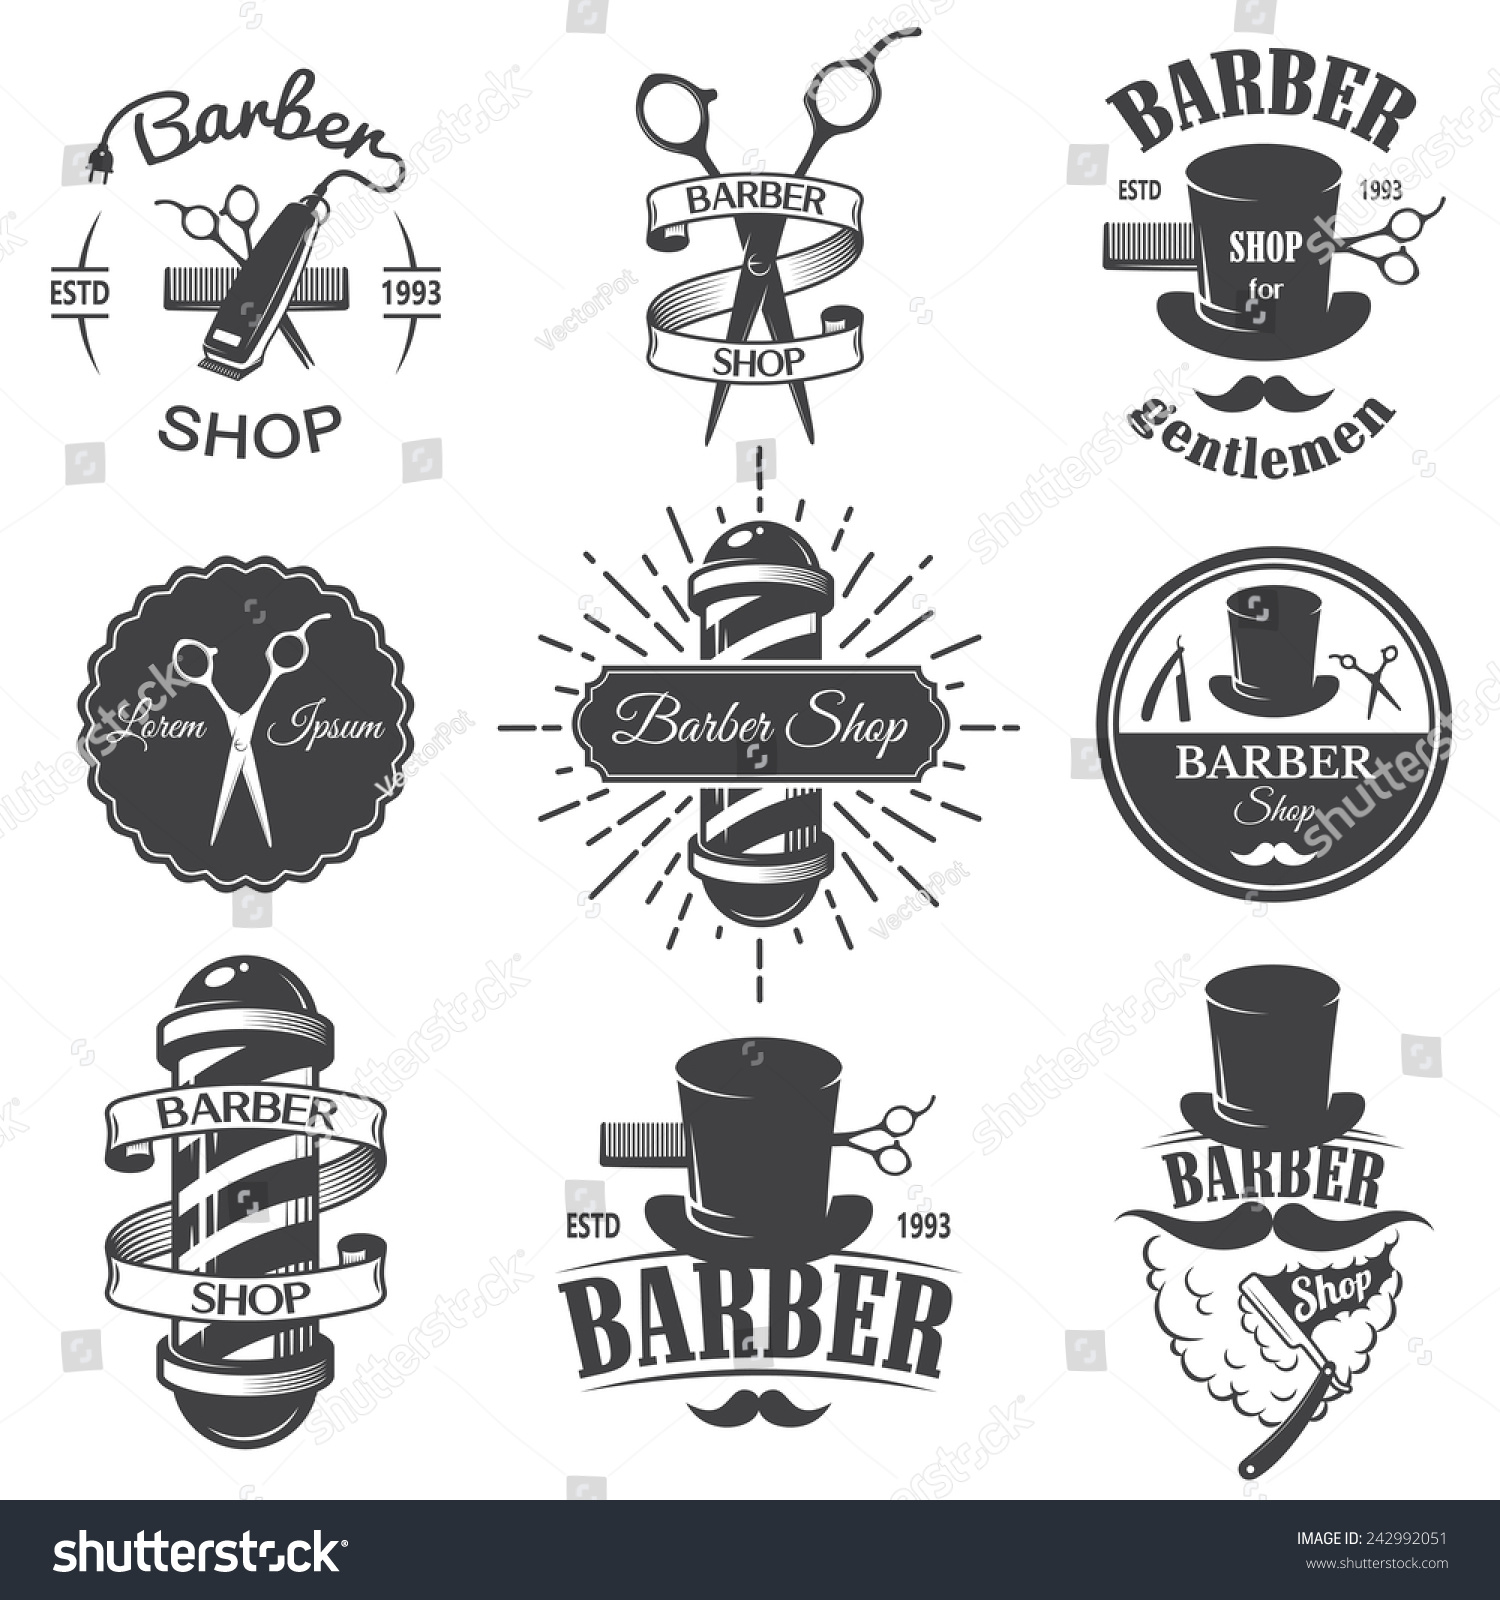 Antique barber shop sign - Set Of Vintage Barber Shop Emblems Label Badges And Designed Elements Monochrome Linear